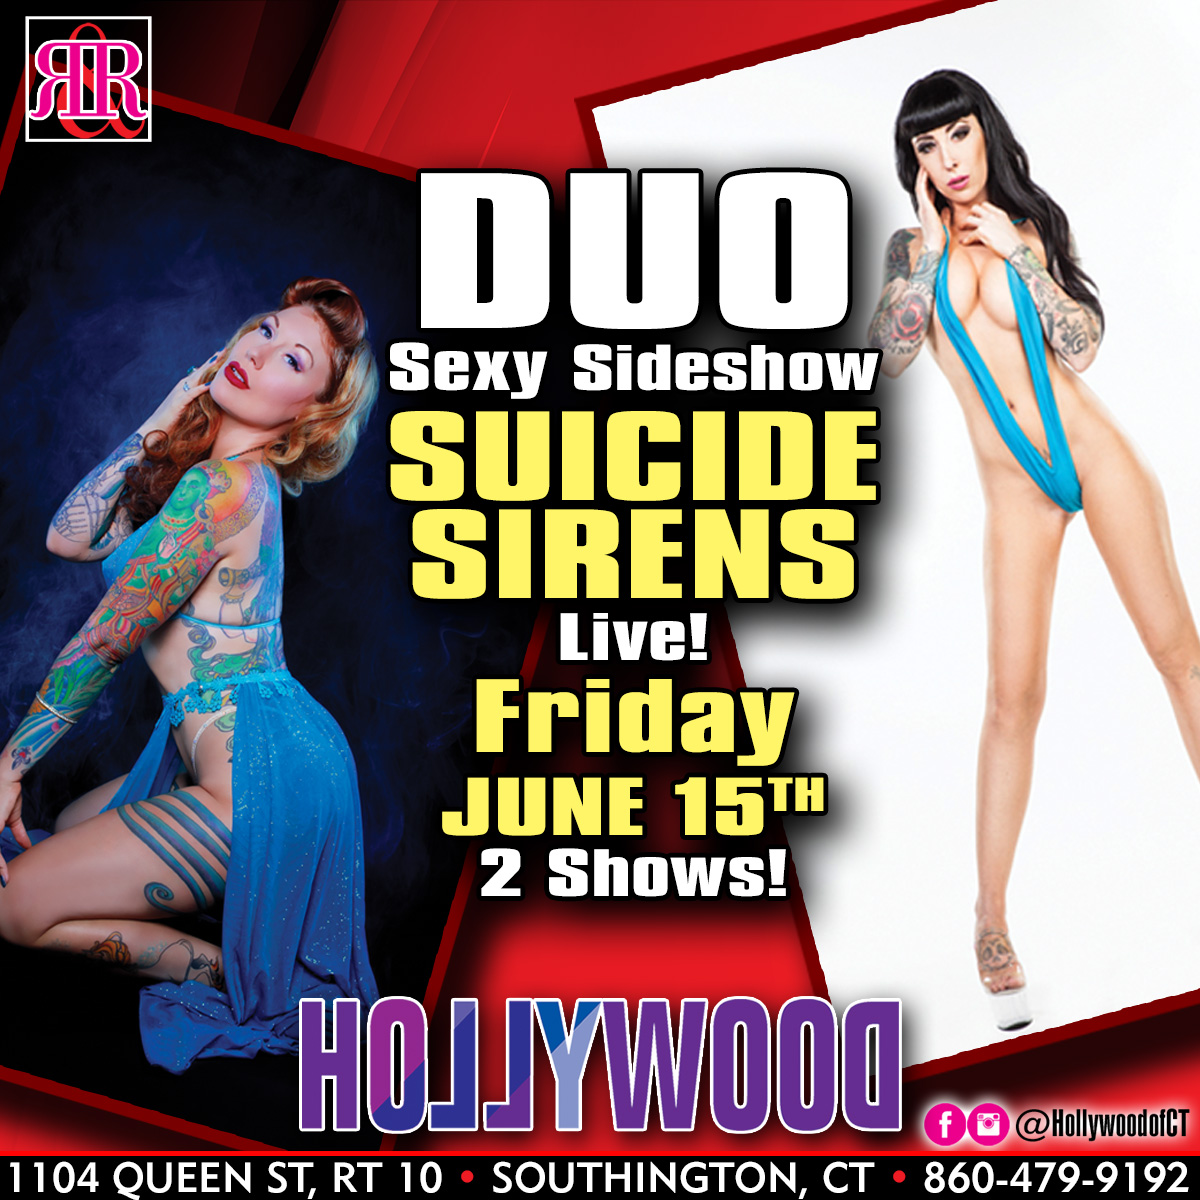 Sexy Sideshow Duo Suicide Sirens | Hollywood Strip Club Connecticut